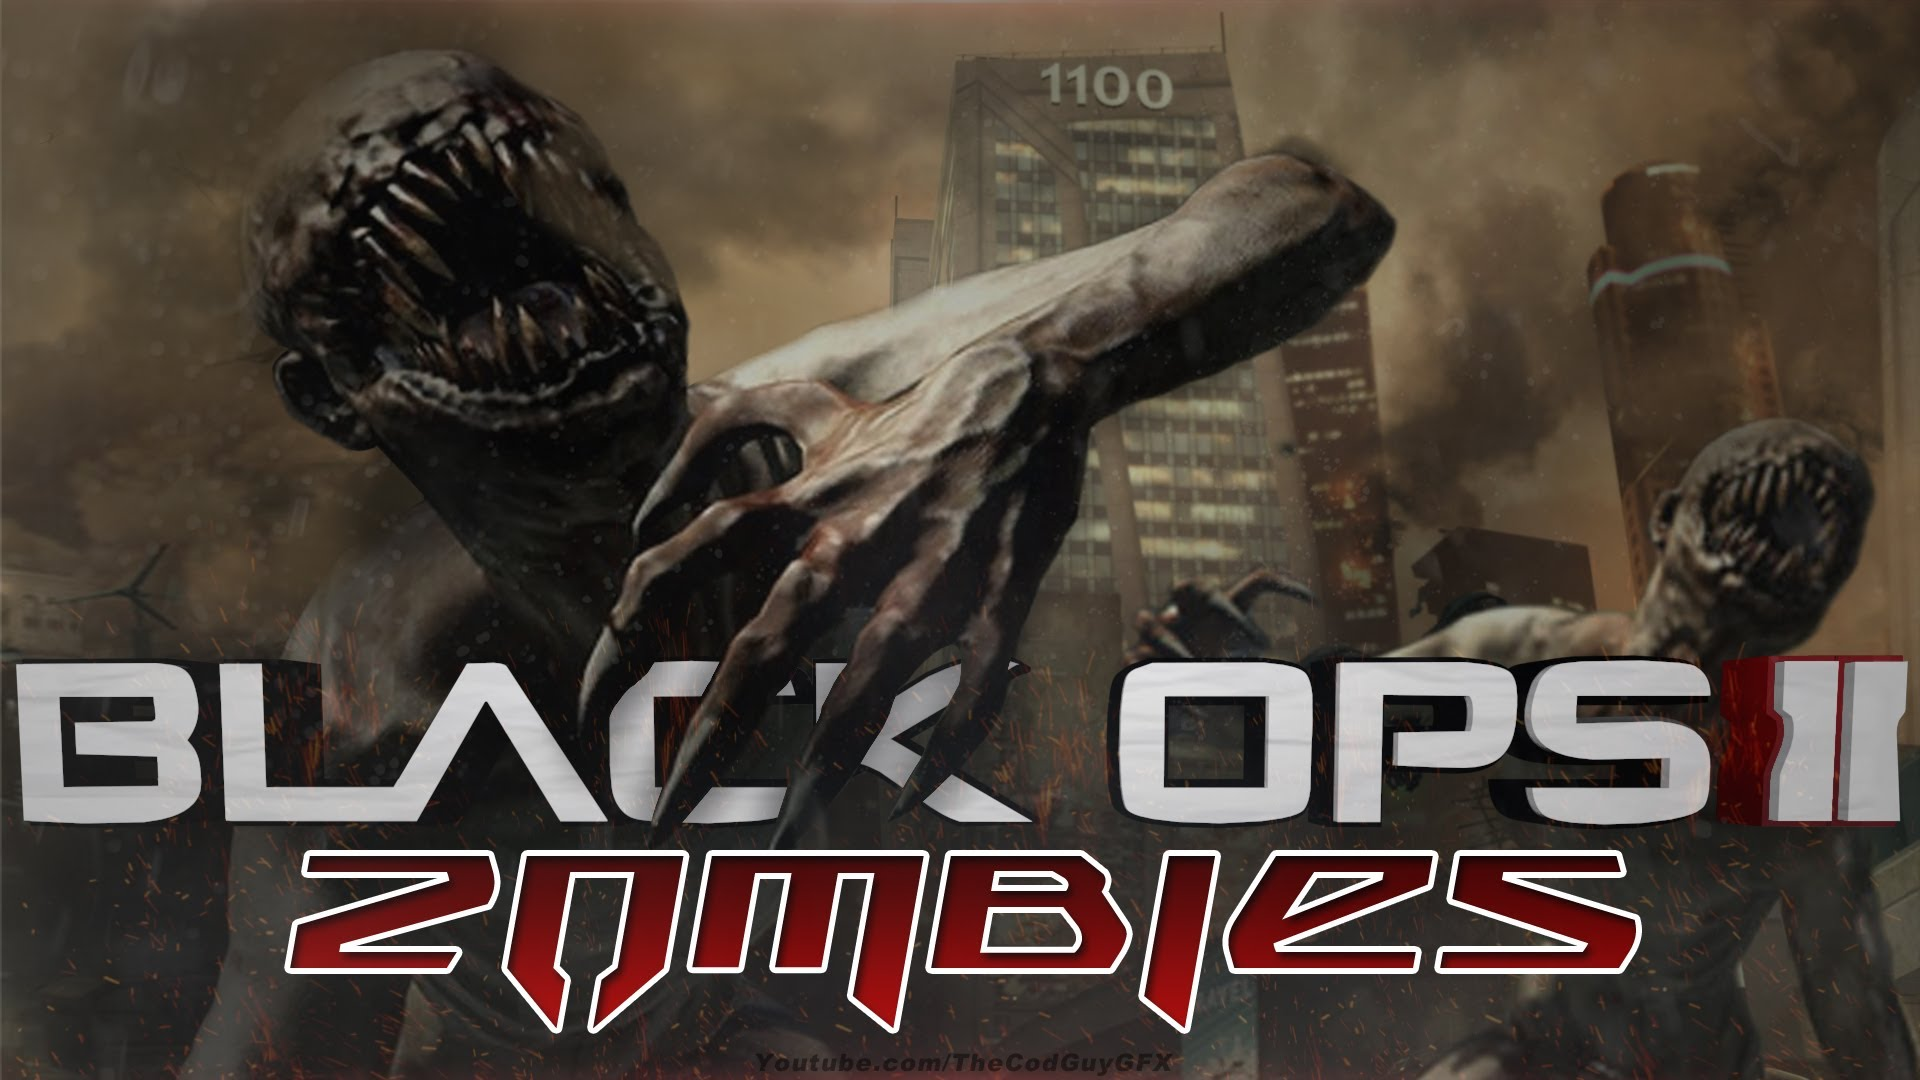 Black ops 2 Zombies Wallpaper SPEED ART! USED BY WHITEBOY7THST